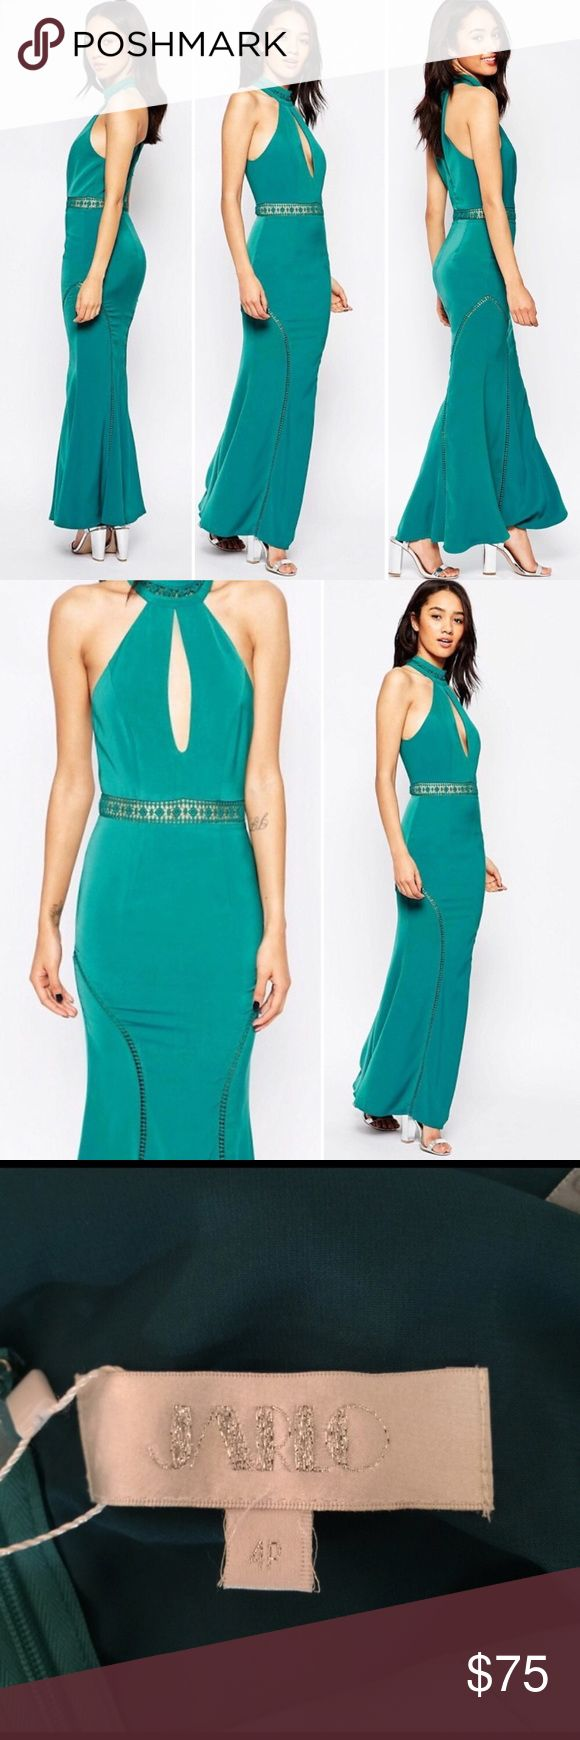 ASOS Petite Teal Halter Maxi with Crochet Inserts. This lovely teal maxi is by ASOS Petites Jarlo London. It is fully lined with crochet details at the waist and throughout the dress. Halter neckline, keyhole front detail, dropped armholes, fishtail hem and back zip closure. The fit is close cut and the fabric is silky woven 100% polyester and has NO STRETCH. THIS DRESS RUNS SMALL. Pls READ MEASUREMENTS. The size tag reads UK 4P. Which is equivalent to US 0P. Measures more like a US size 00…